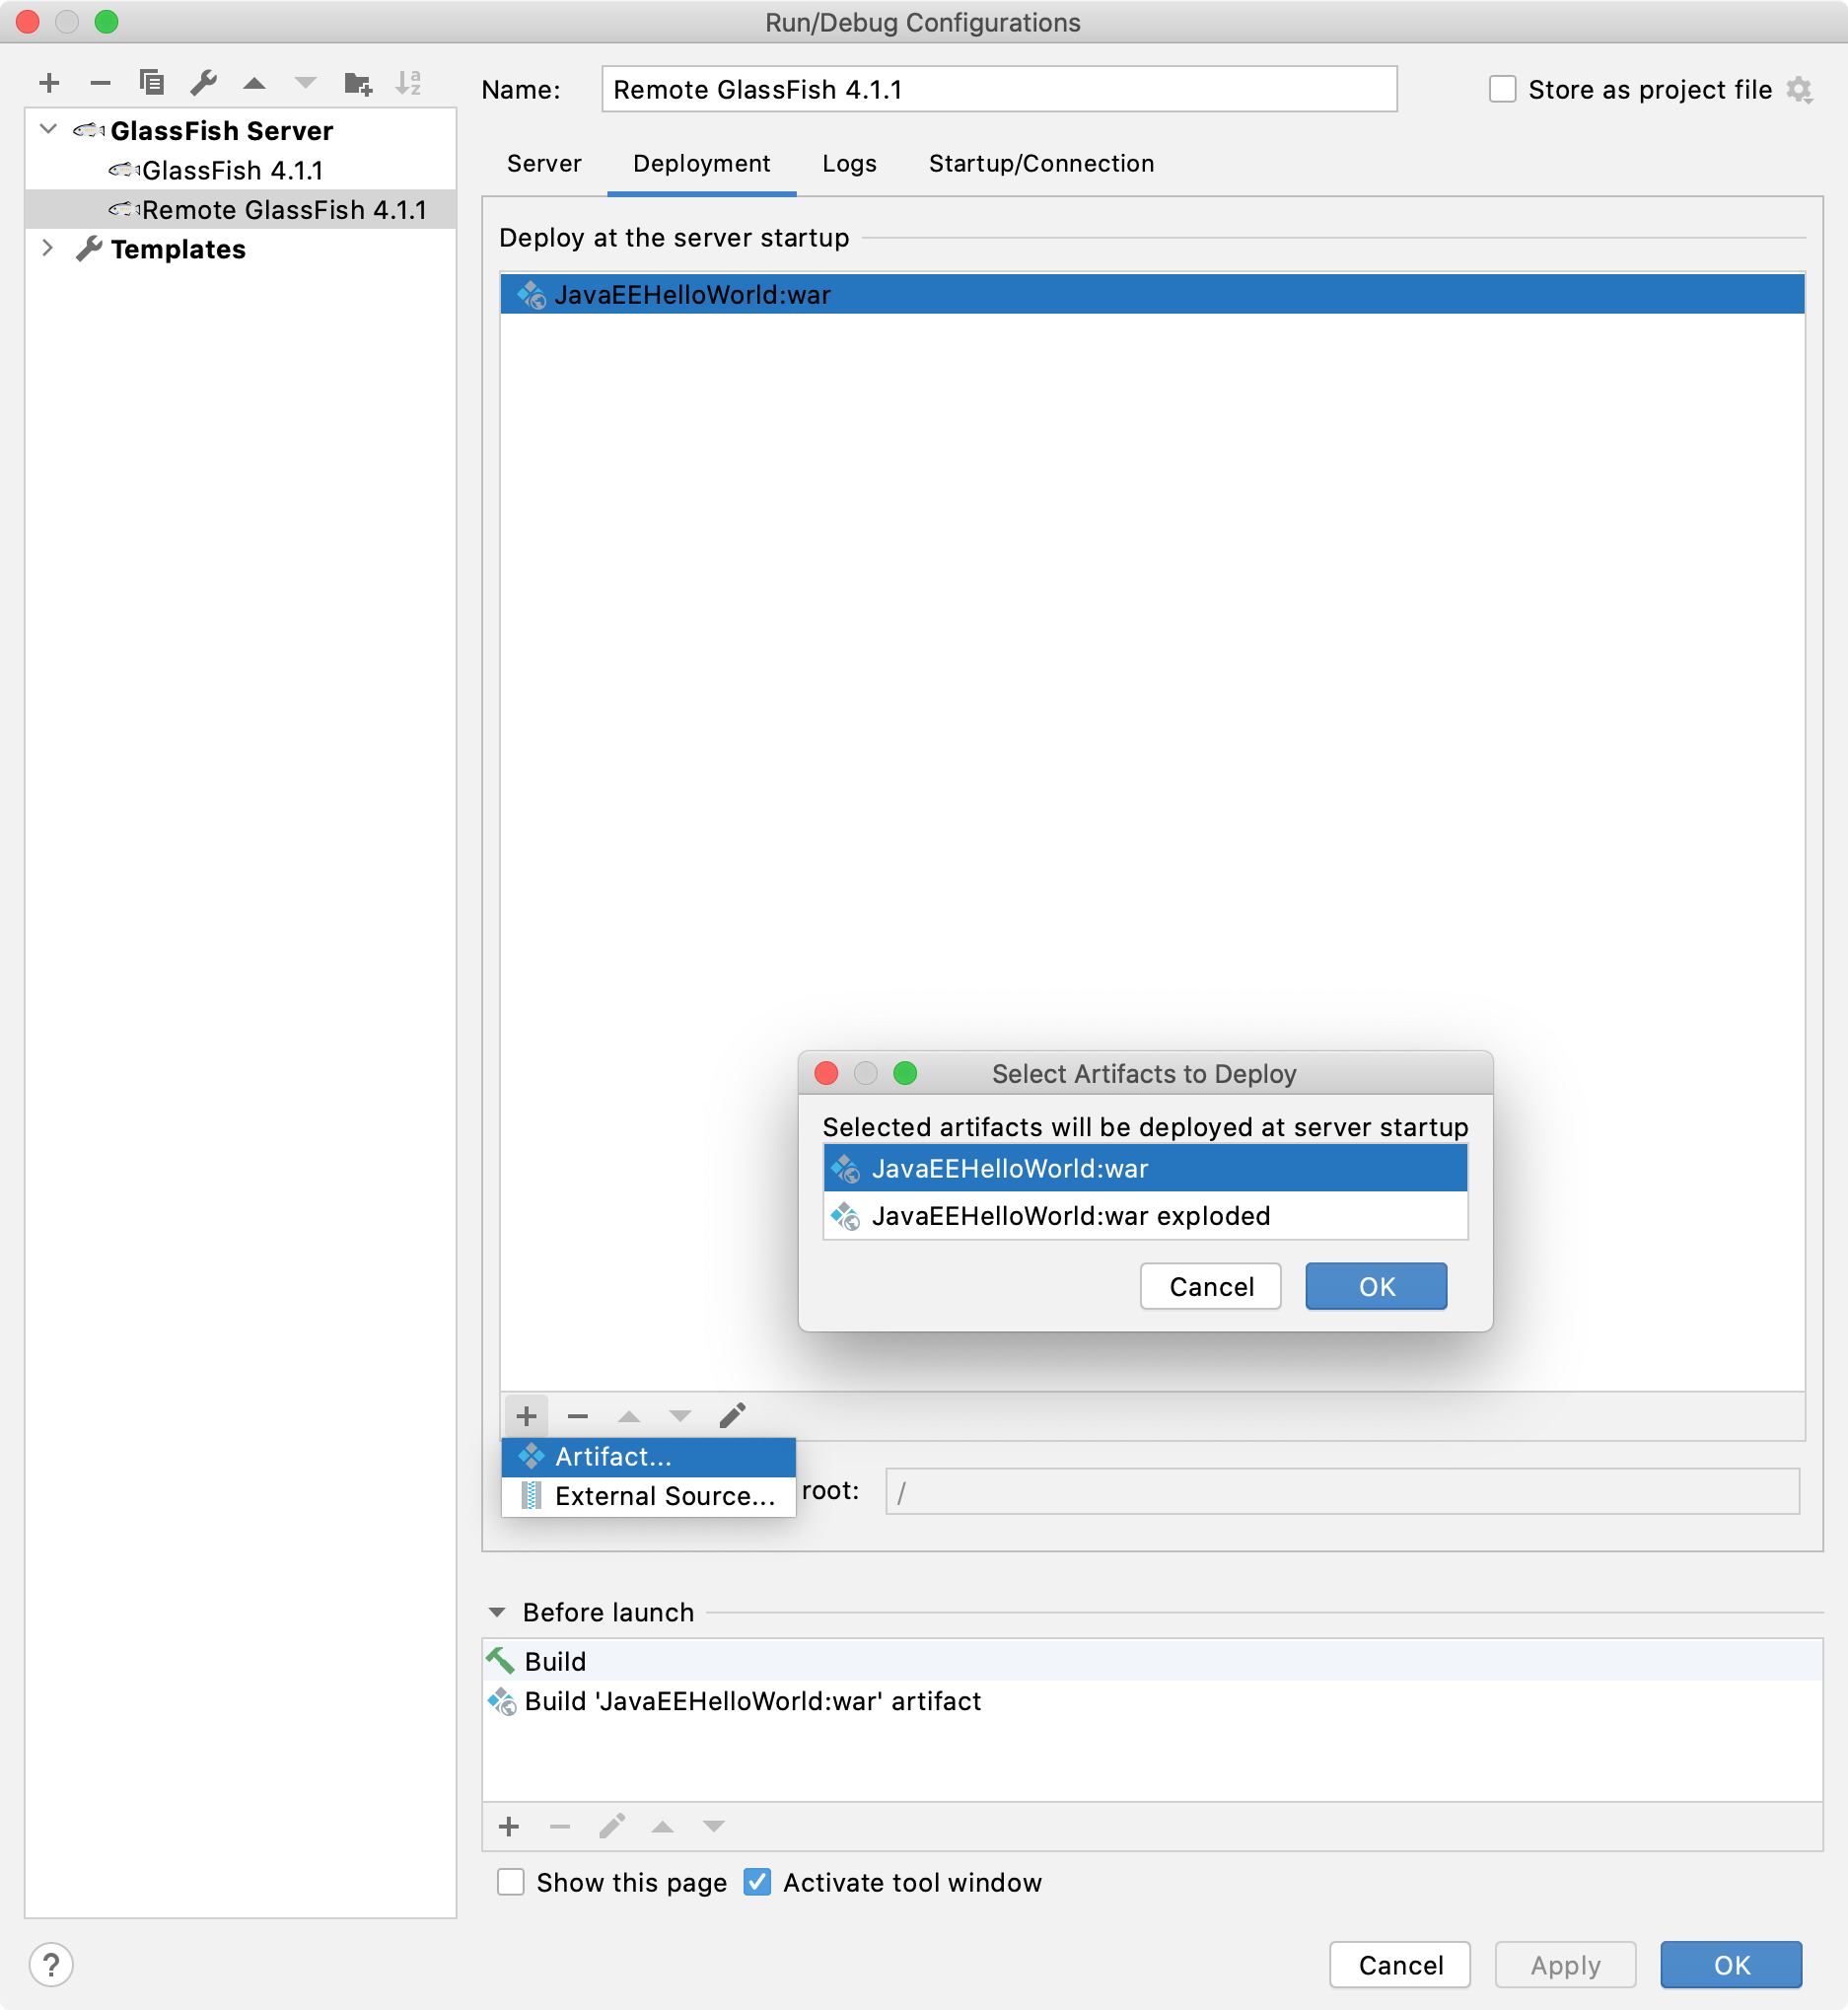 Remote GlassFish run configuration artifacts to deploy